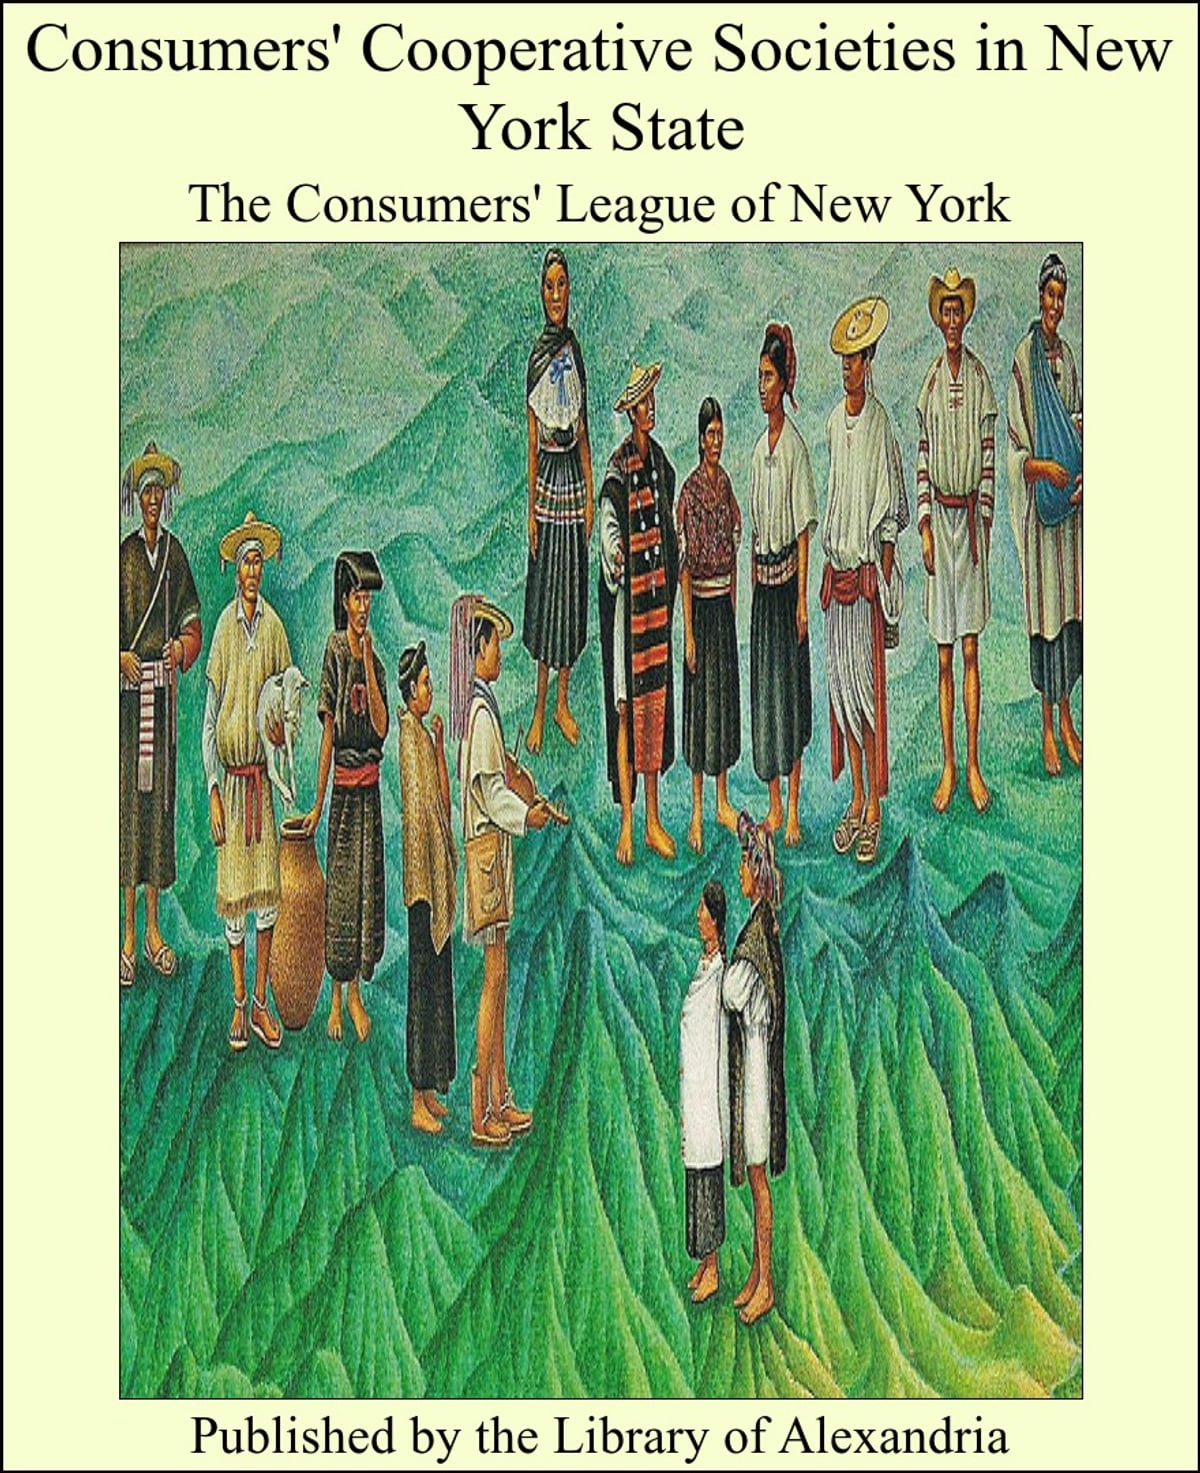 Consumers Cooperative Societies in New York State